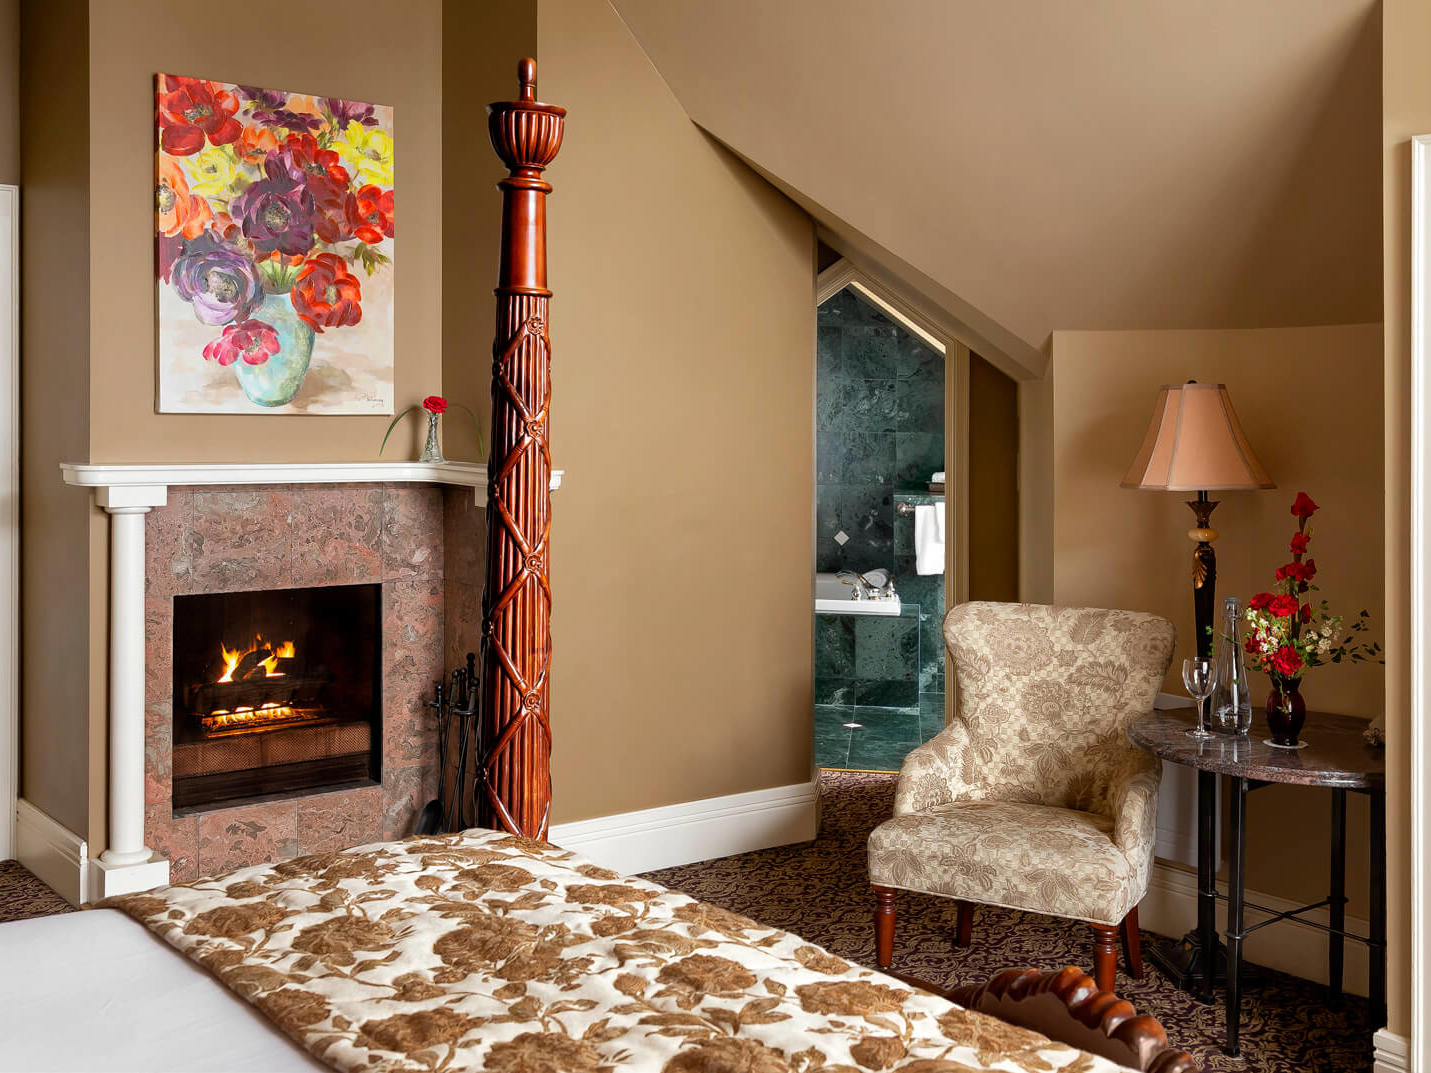 Chair and table by fireplace.